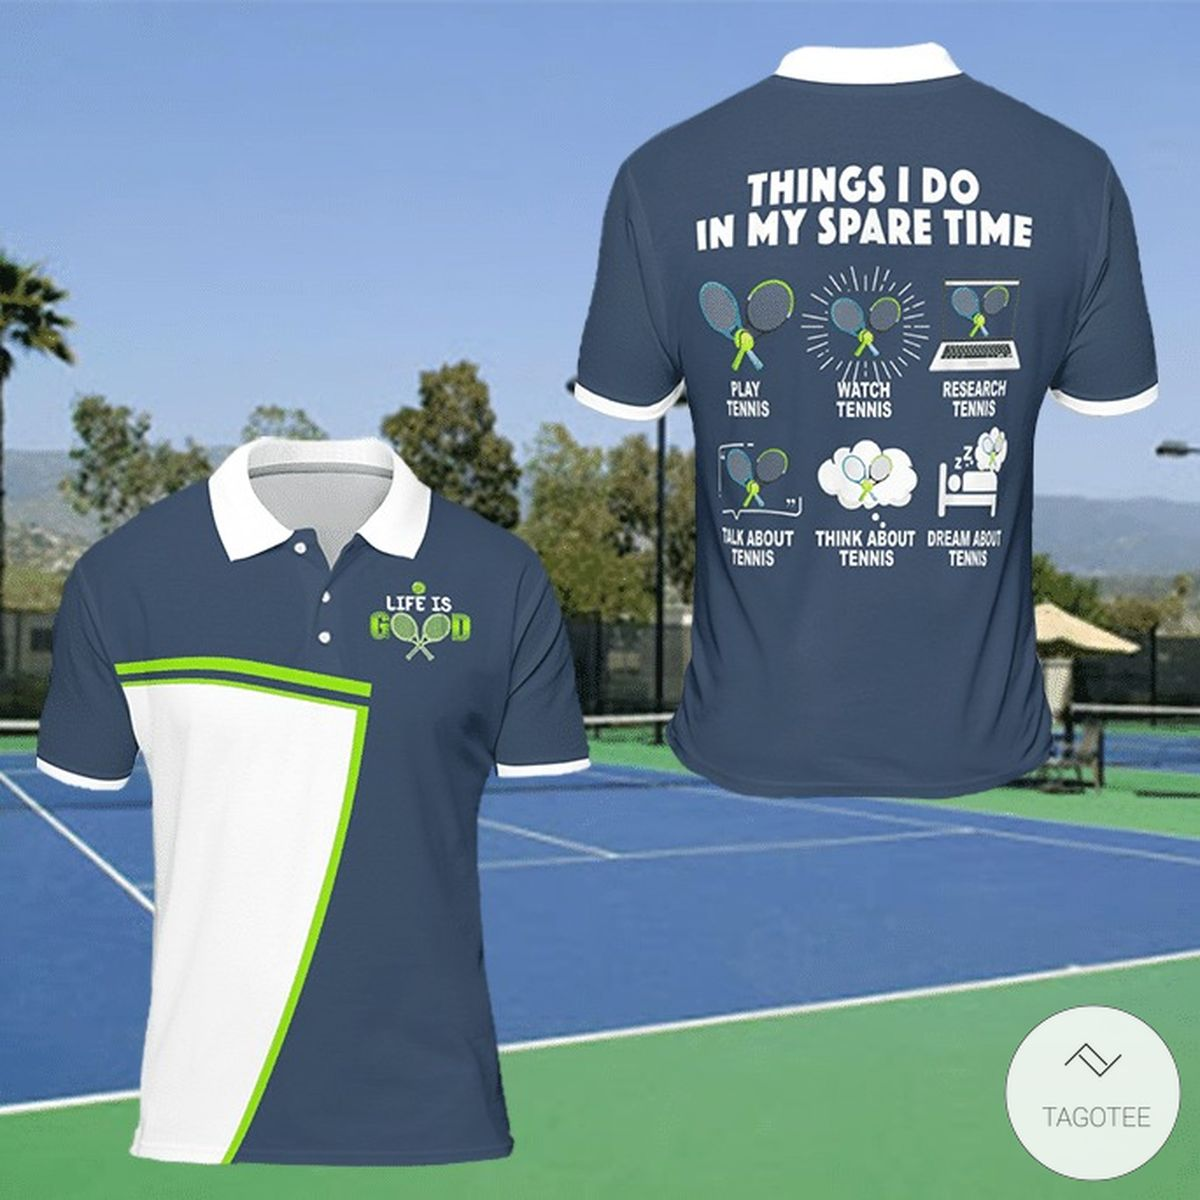 Things I Do In My Spare Time Play Tennis Watch Tennis Research Tennis Polo Shirt